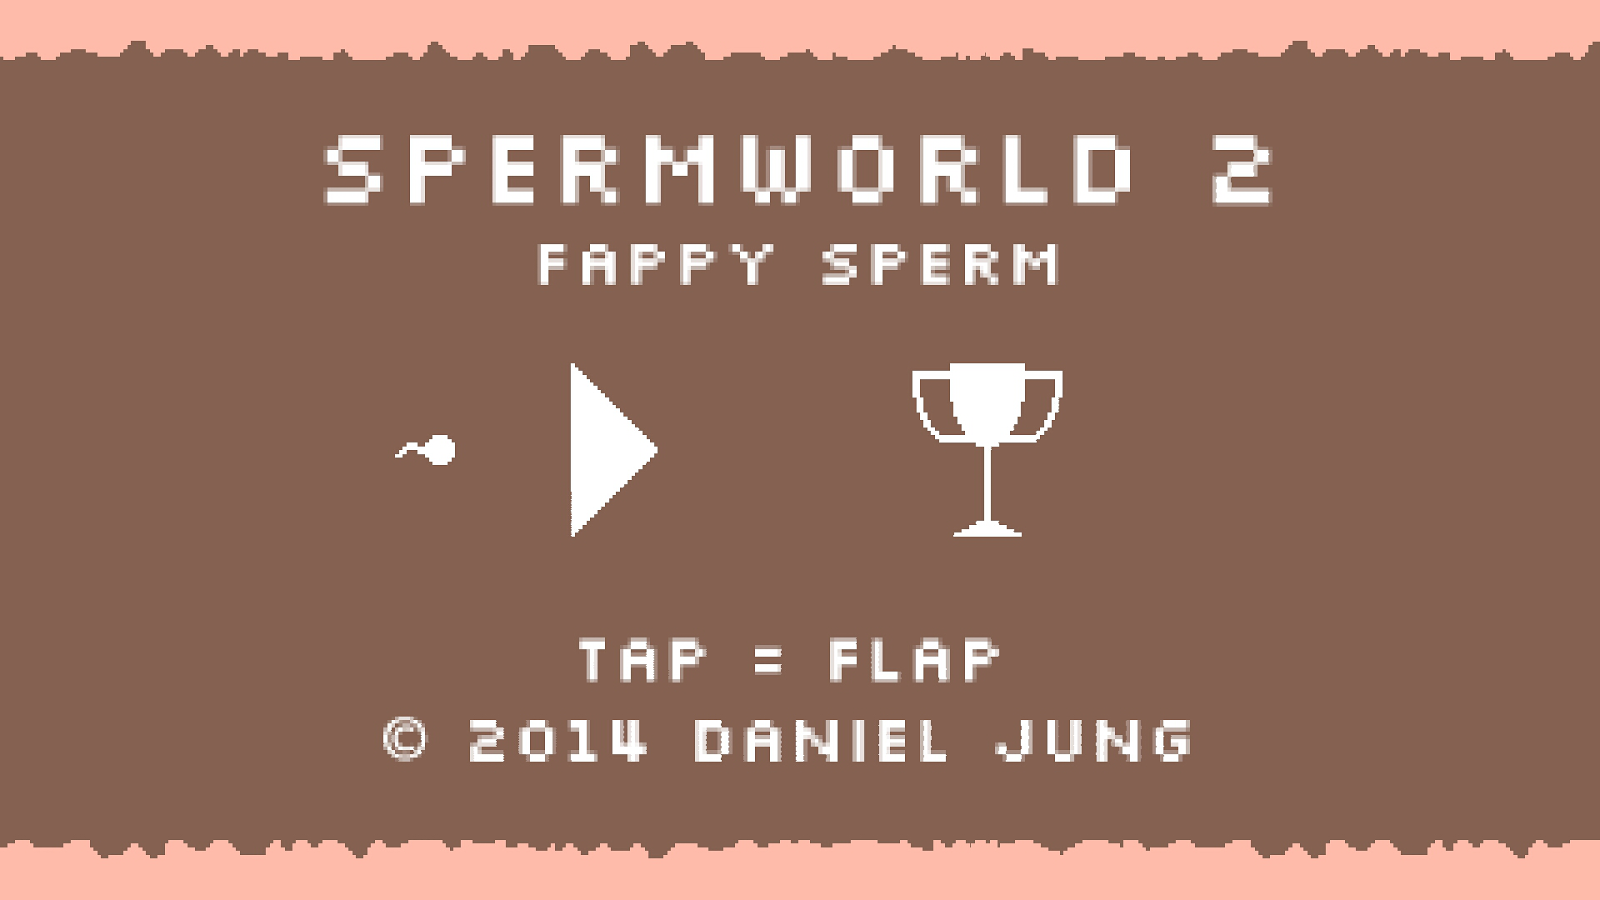 Xxx spermworld sexual clip